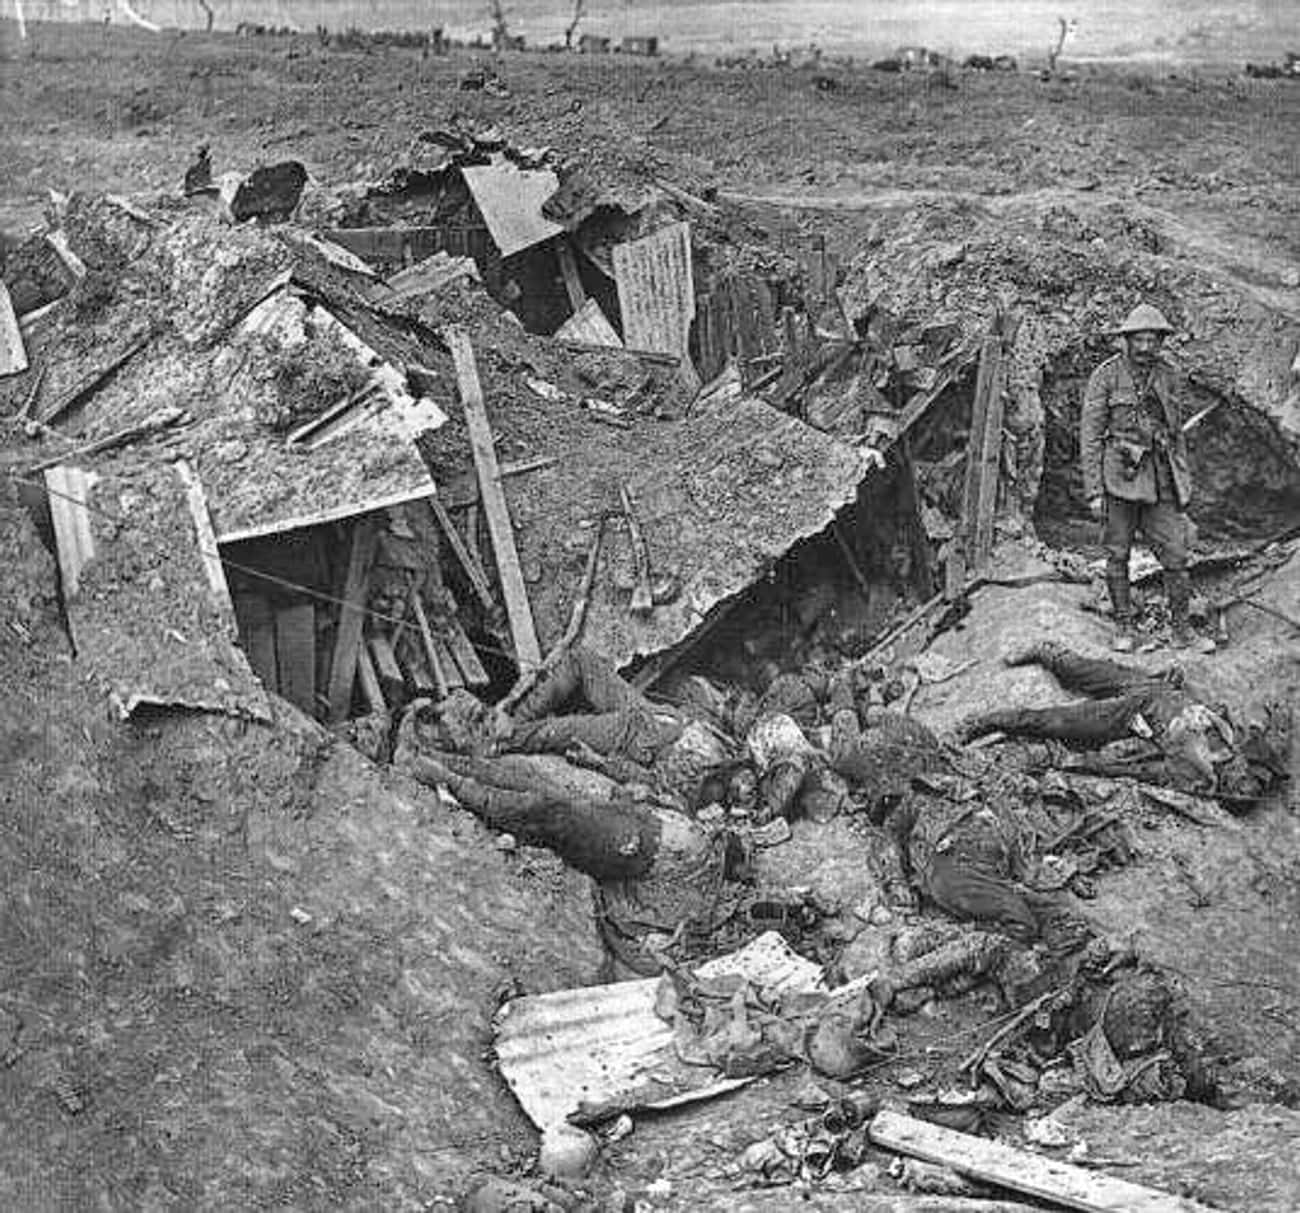 'There Were Men Falling Back I is listed (or ranked) 4 on the list WWI Soldiers Describe What It Was Like To Go 'Over The Top' In Trench Warfare